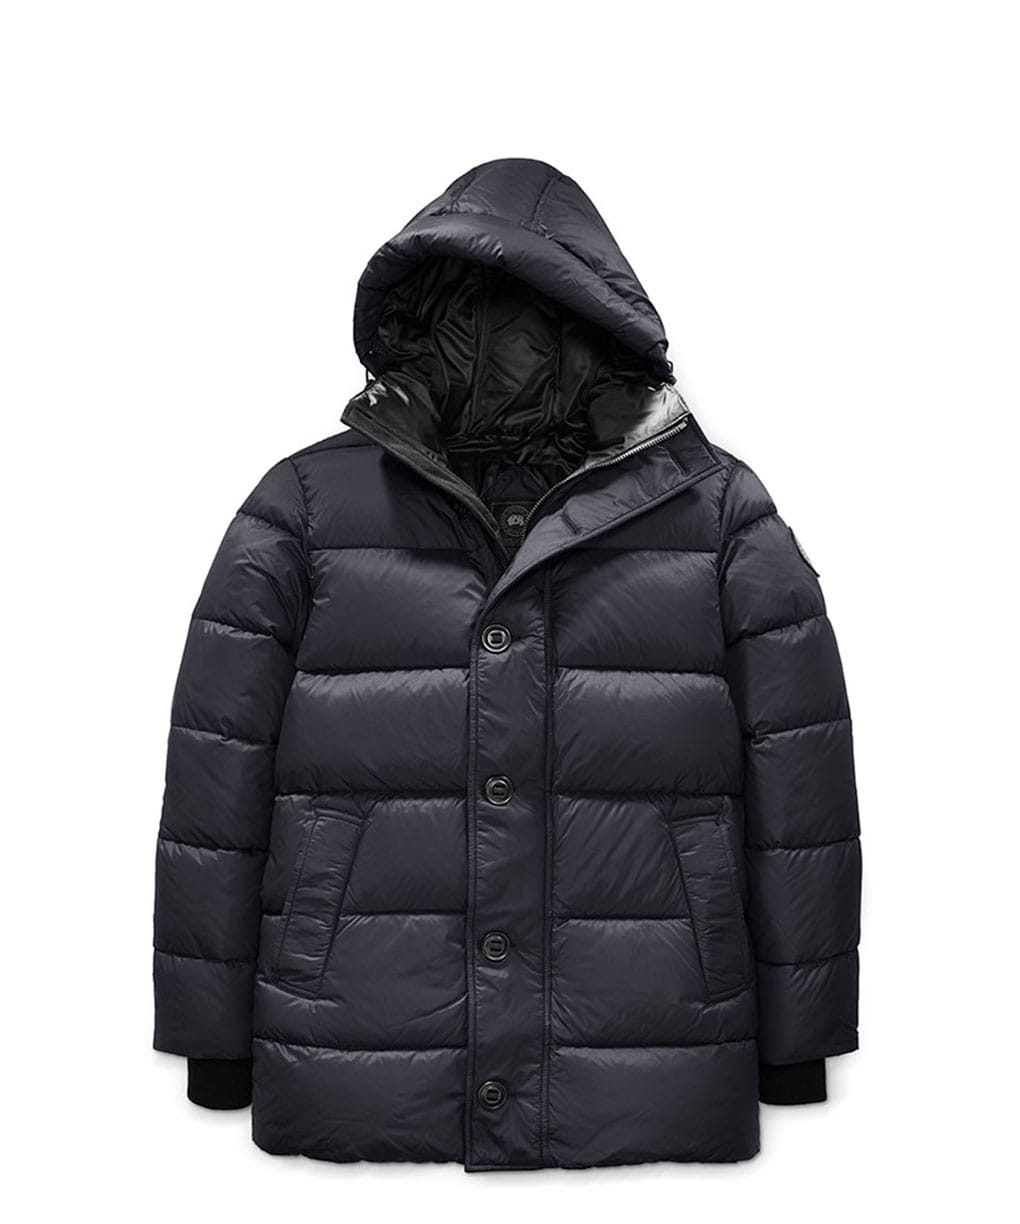 VERNON PARKA BLACK LABEL